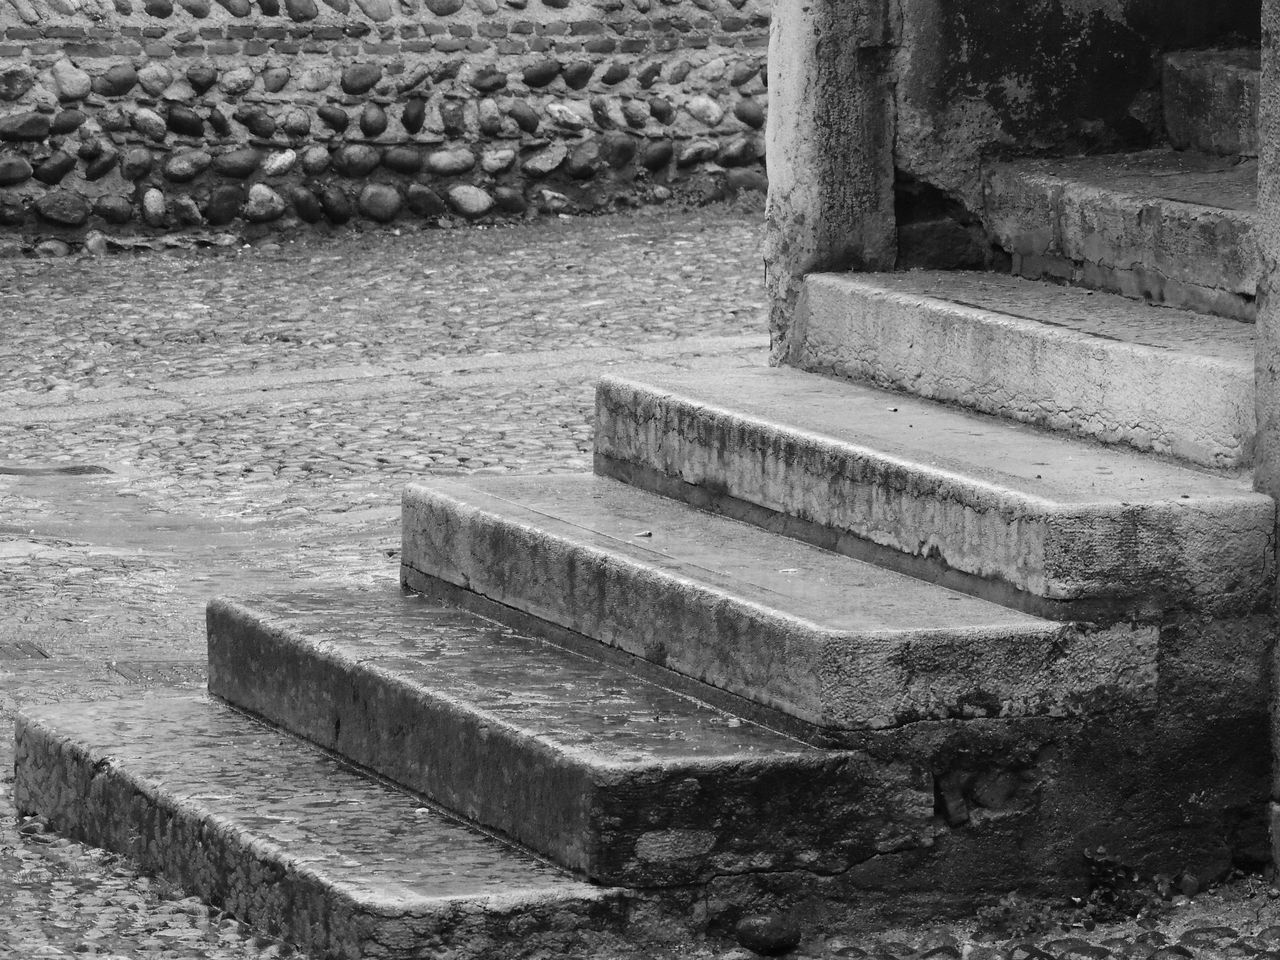 Black & White Black And White Black And White Photography Black&white Blackandwhite Blackandwhite Photography Blackandwhitephotography Close-up Cultures Day Japanese Garden Nature No People Outdoors Stair Stairs Stairs & Shadows Stairs_collection Steps Stone - Object Water